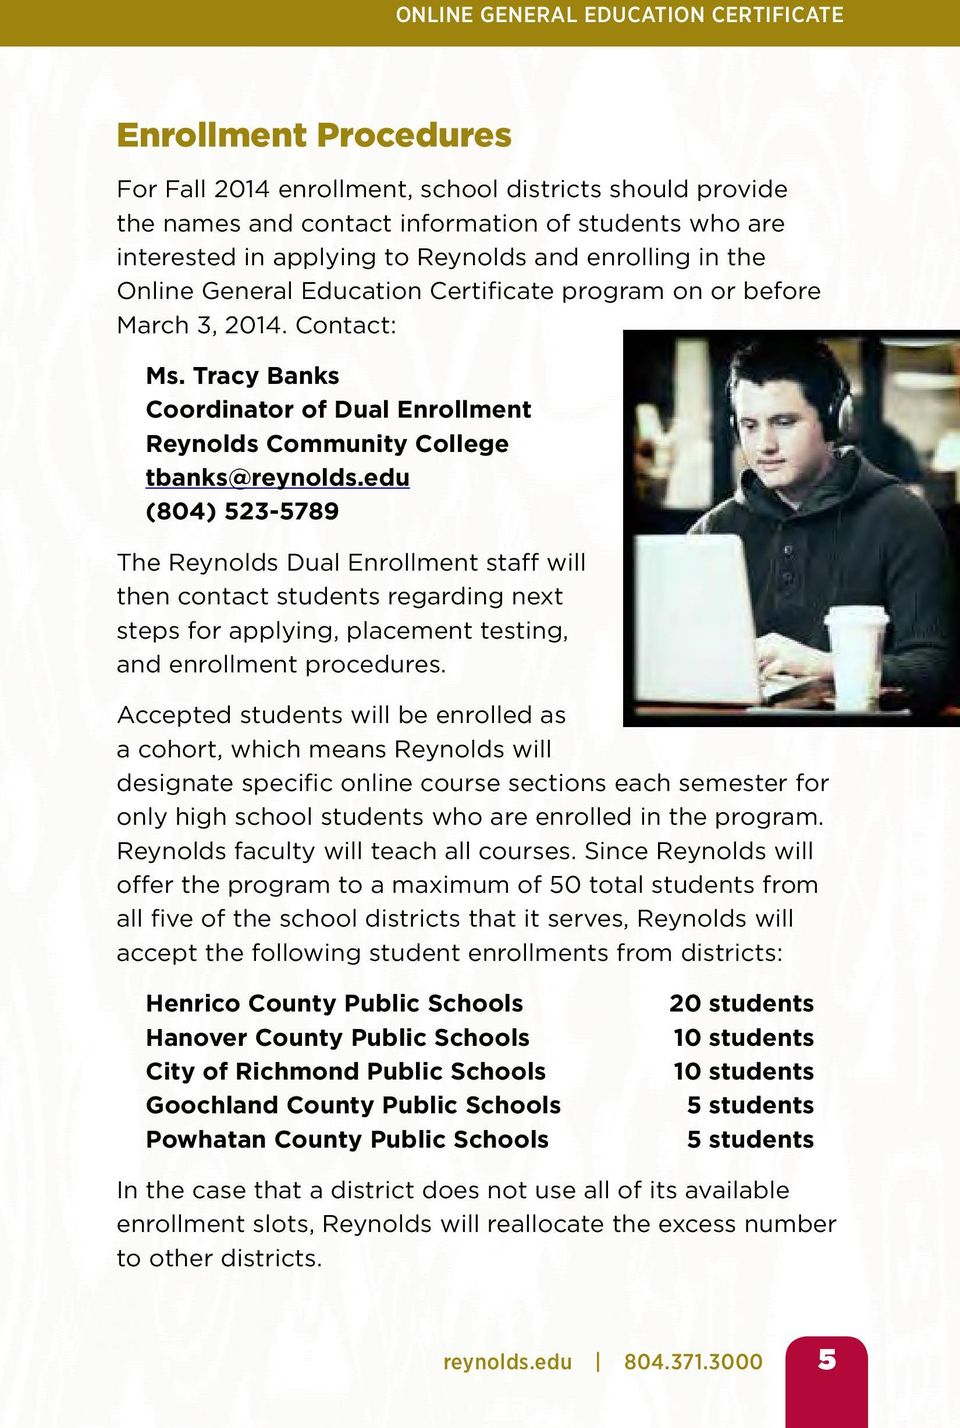 edu (804) 523-5789 The Reynolds Dual Enrollment staff will then contact students regarding next steps for applying, placement testing, and enrollment procedures.